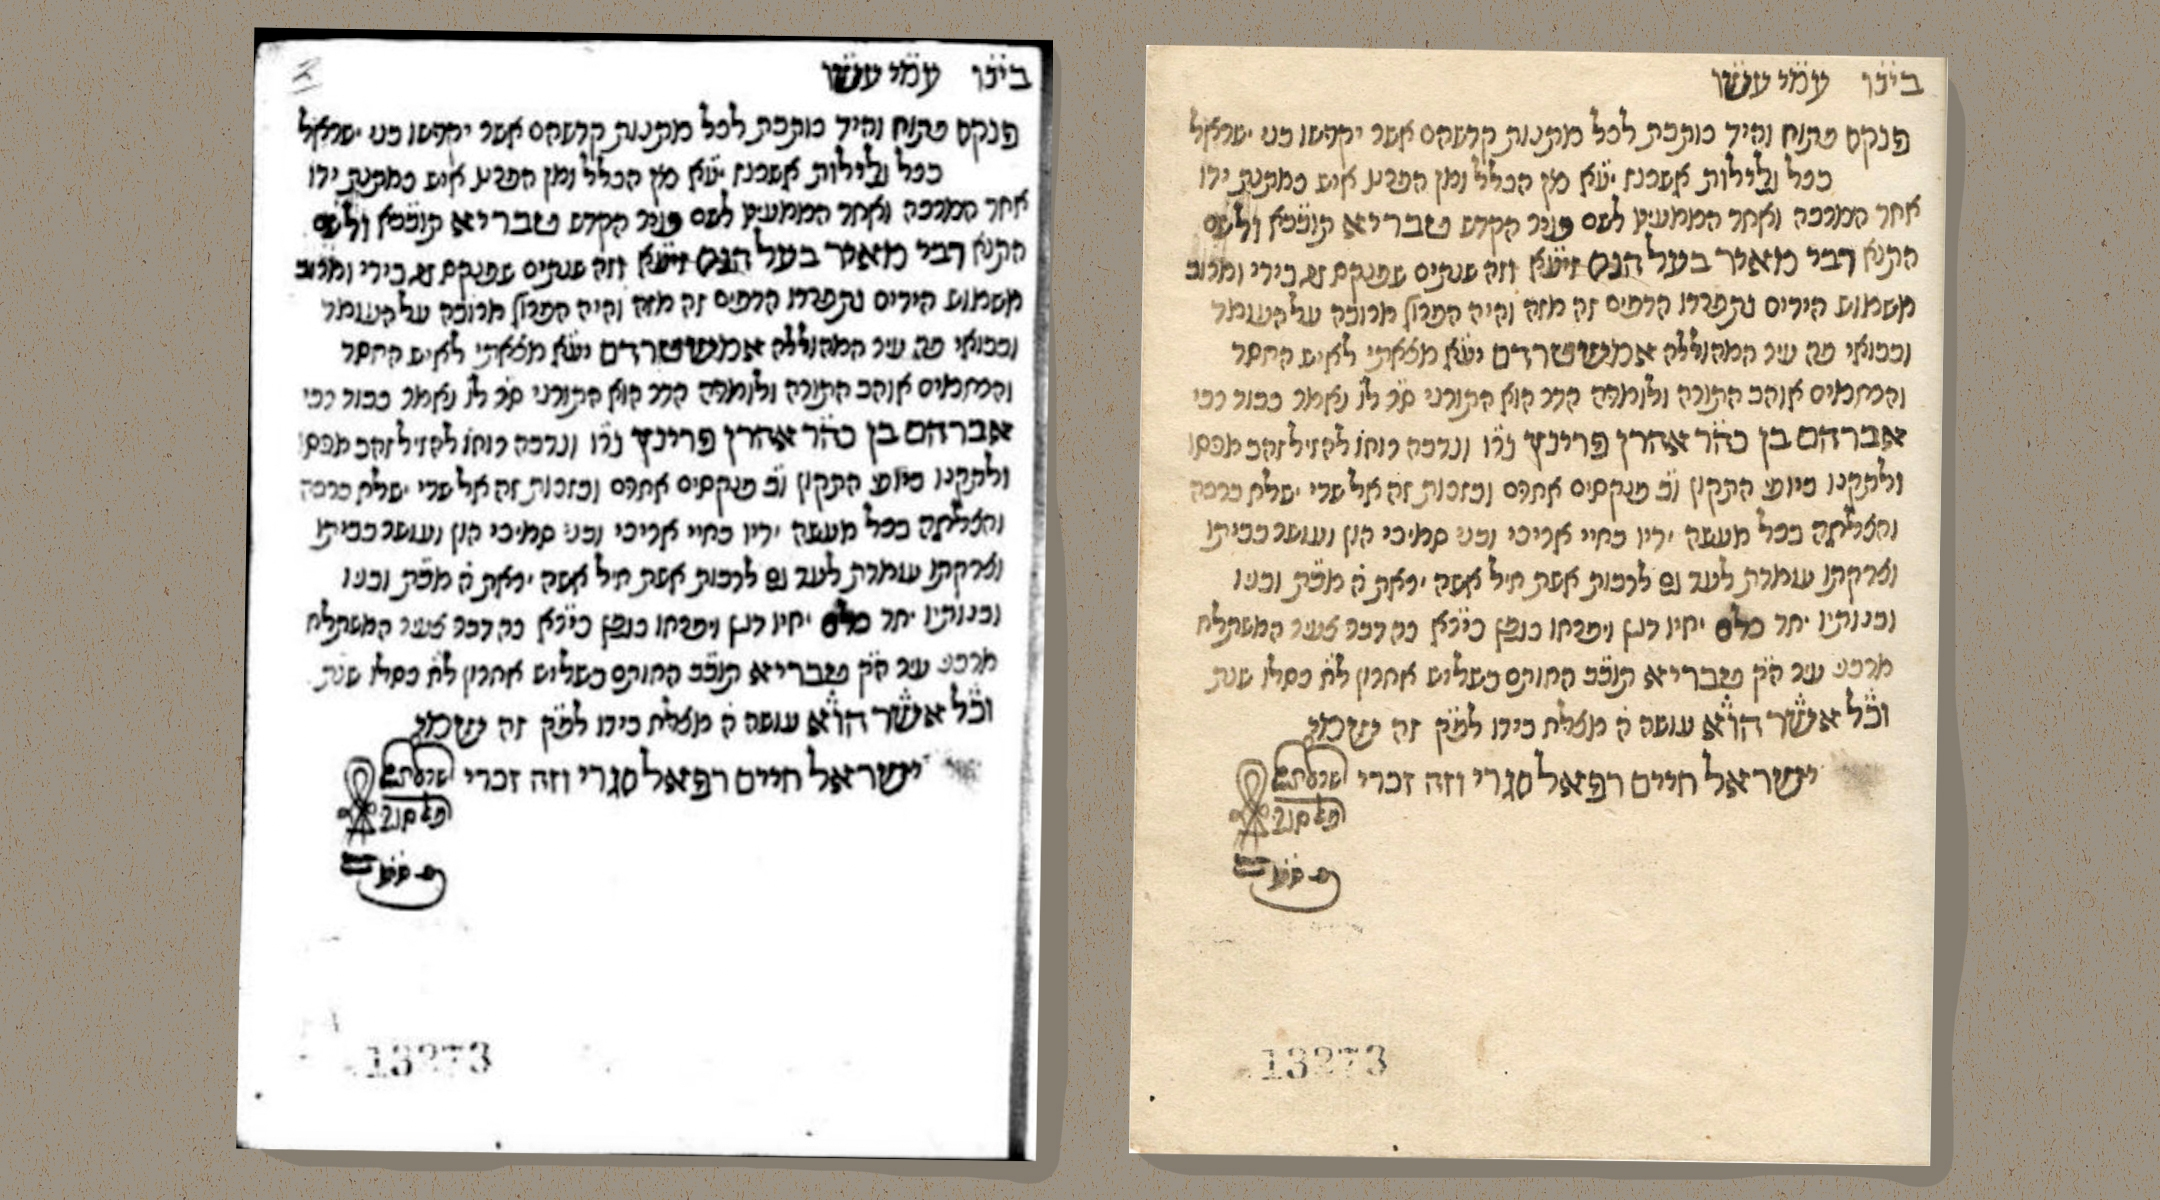 Two matching manuscript pages side by side